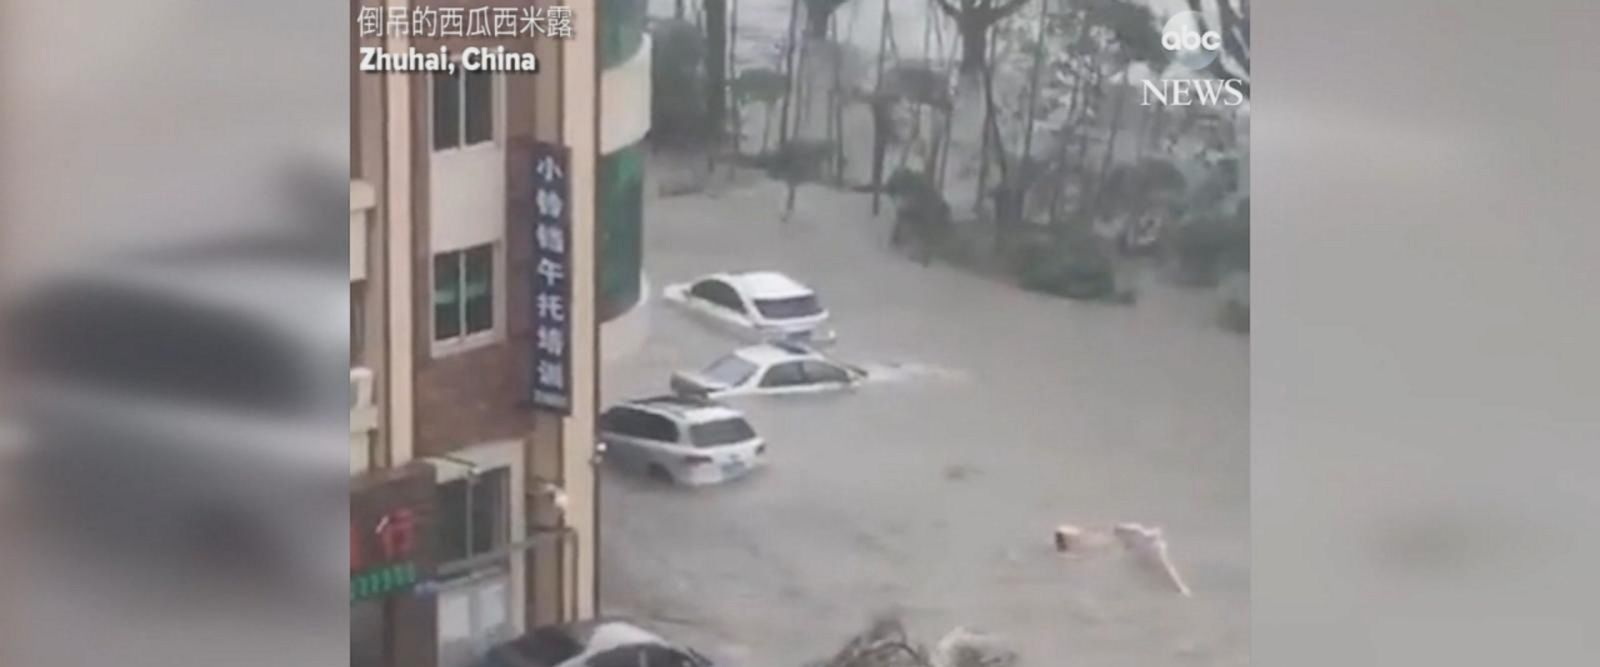 Video shows cars floating in flooded streets, with waves and wind slamming the shoreline.